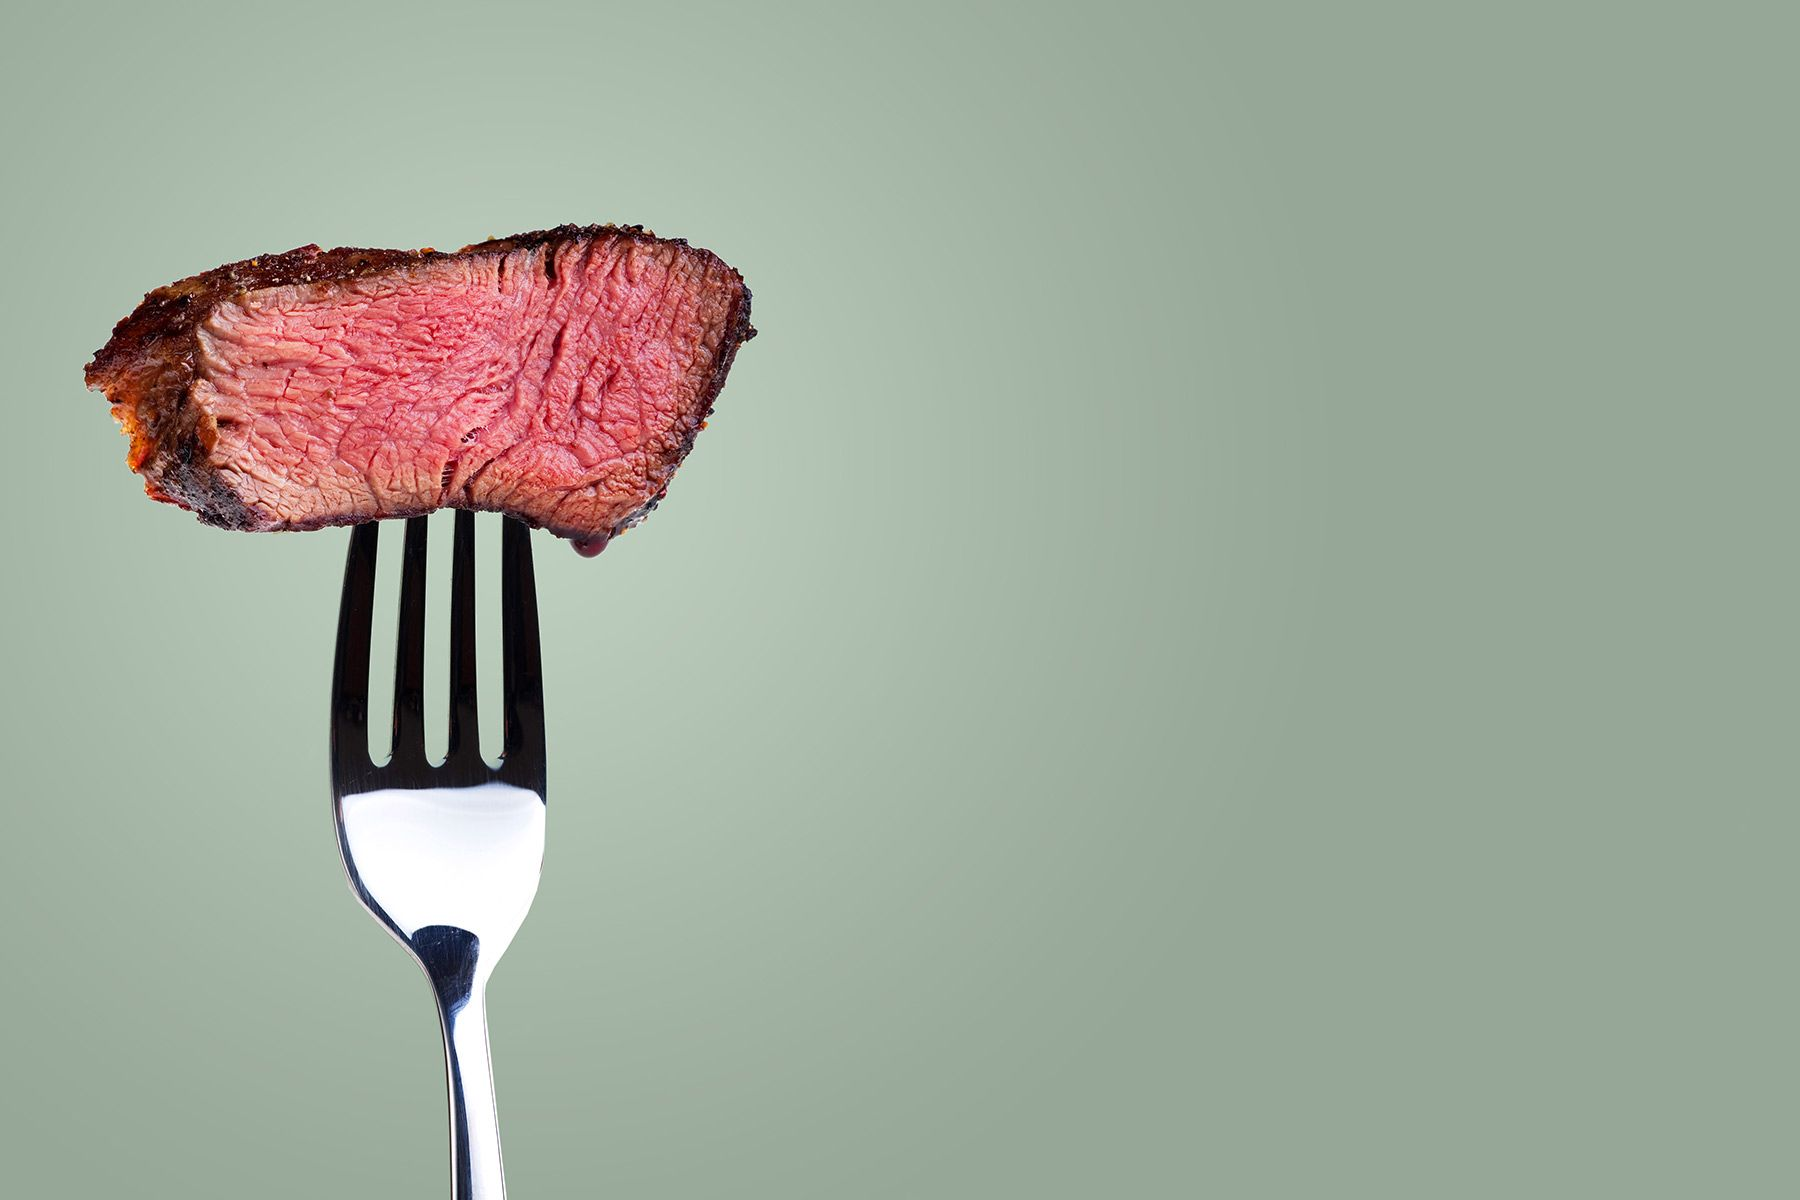 New research provokes controversy over eating red meat